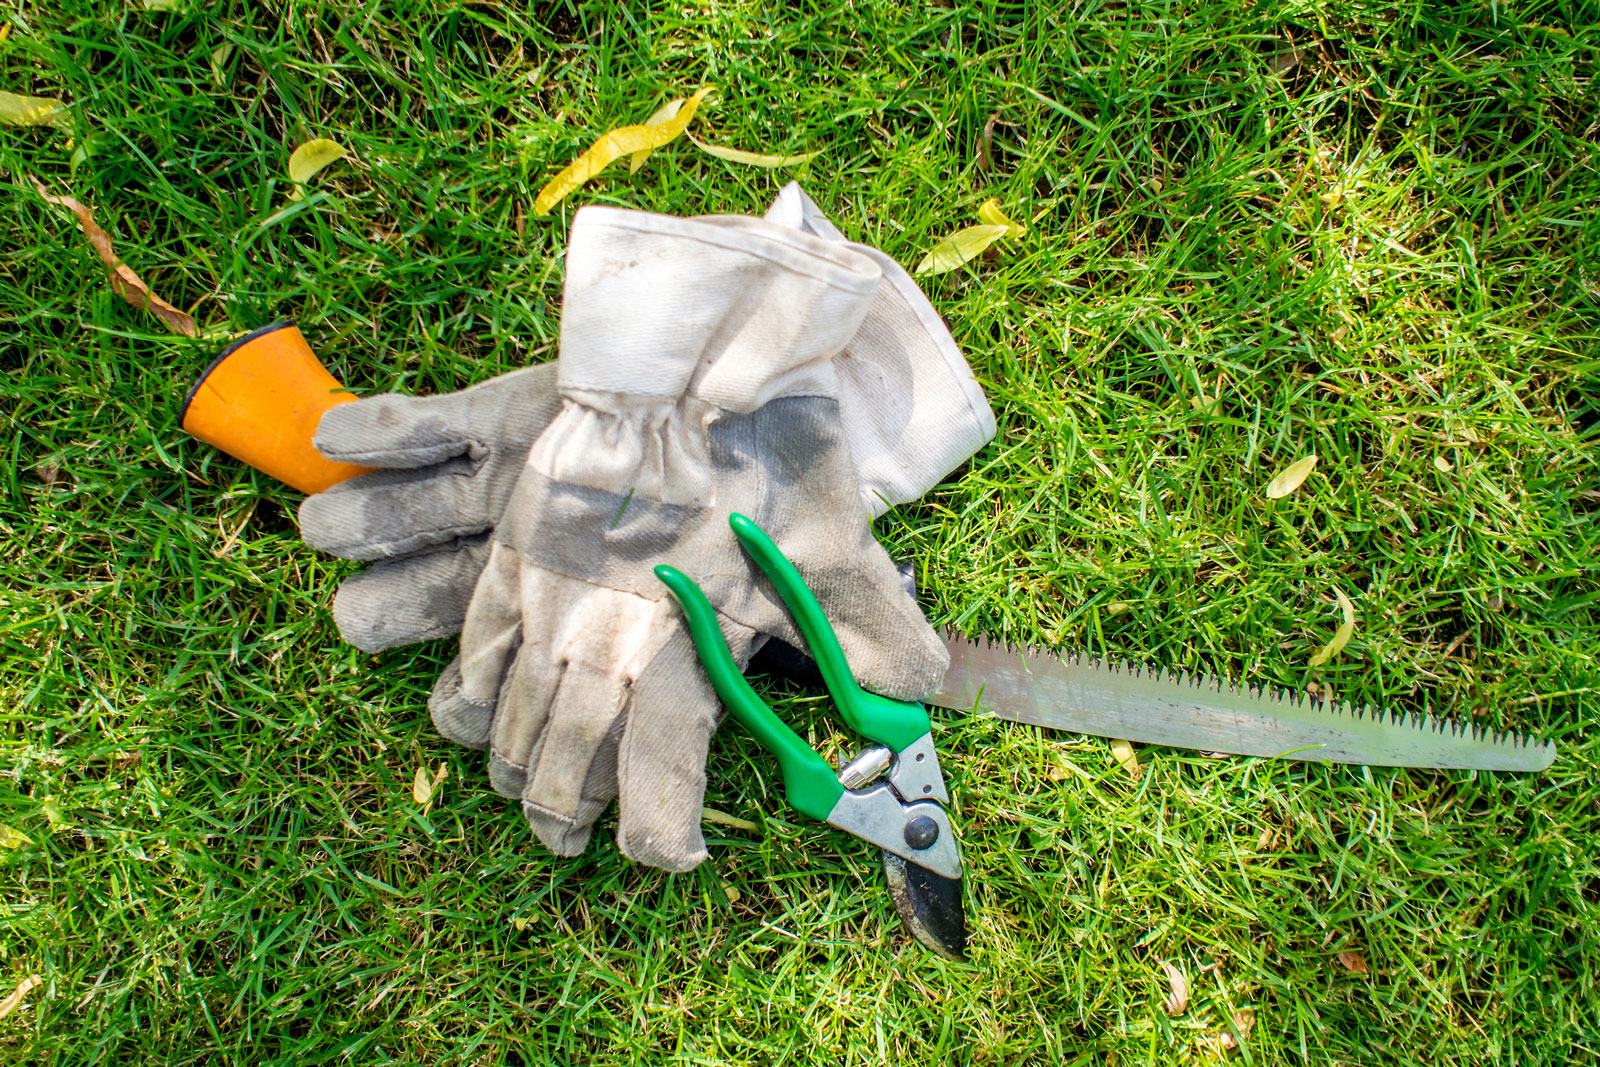 Everythign About Cleaning Garden Tools